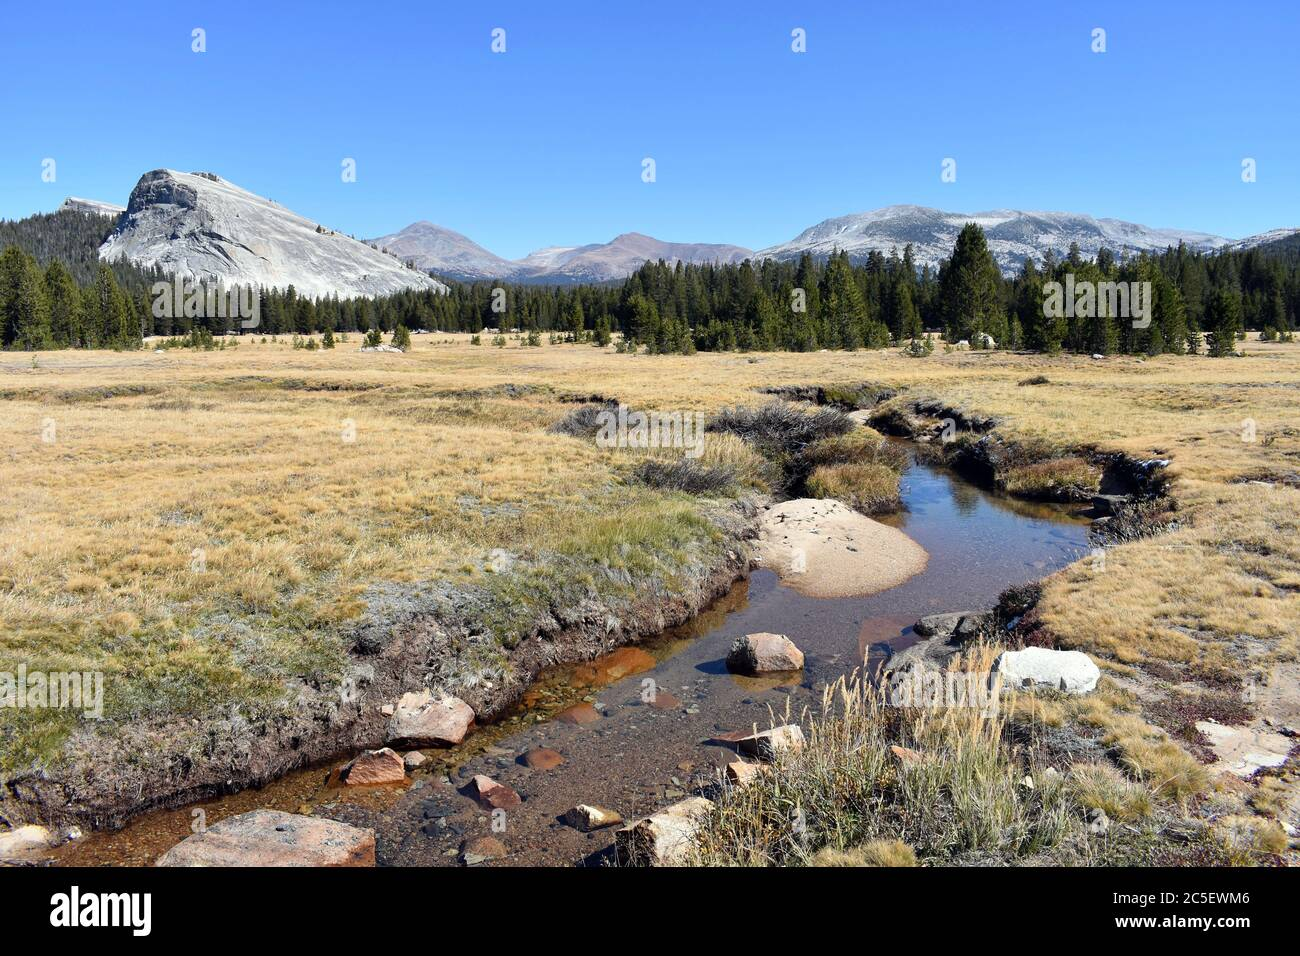 View of Tuolumne Meadows in Fall / Autumn with Lembert Dome and the Tuolumne River surrounded by yellow grass. Yosemite National Park, California. Stock Photo